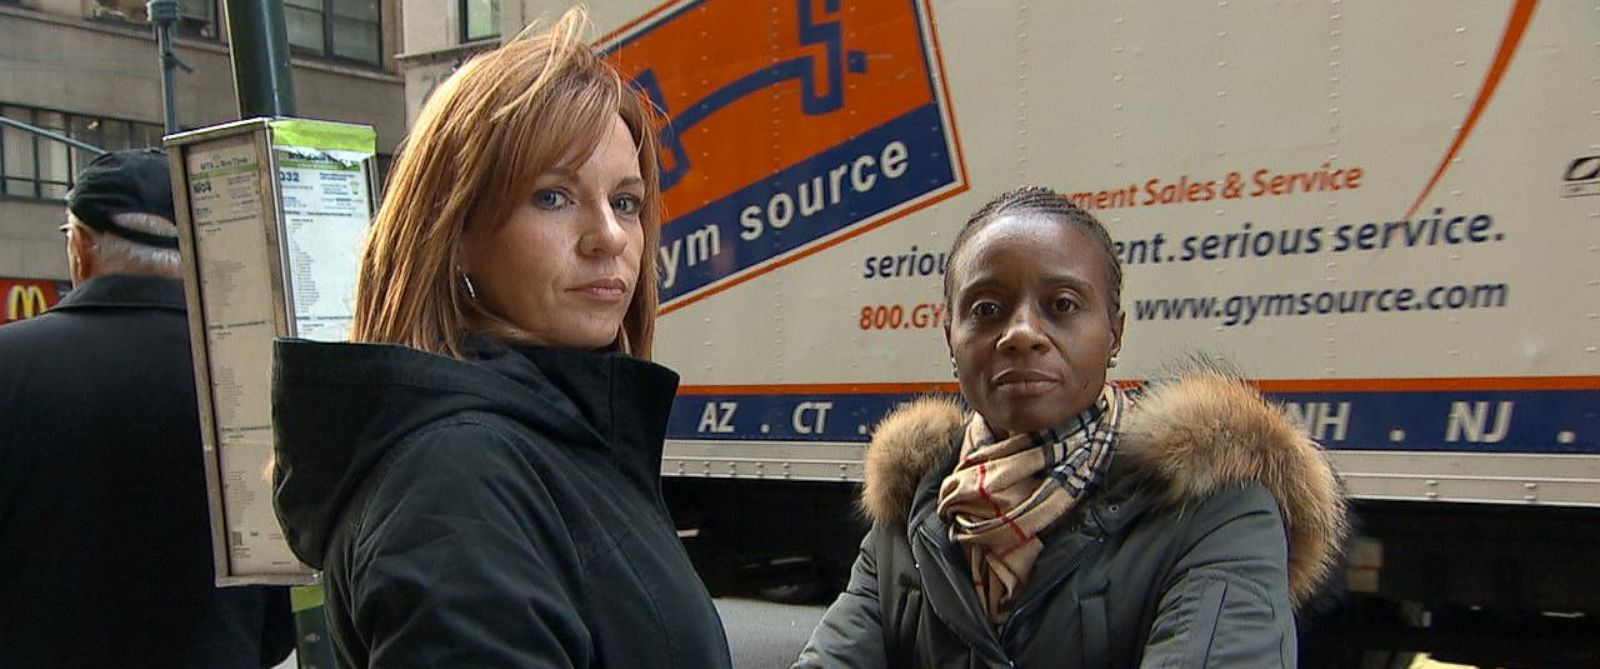 Two female New York City bus operators Nancy Jenkins, left, and Teresa Garcia, right, claim they were sexually harassed by the same male supervisor.